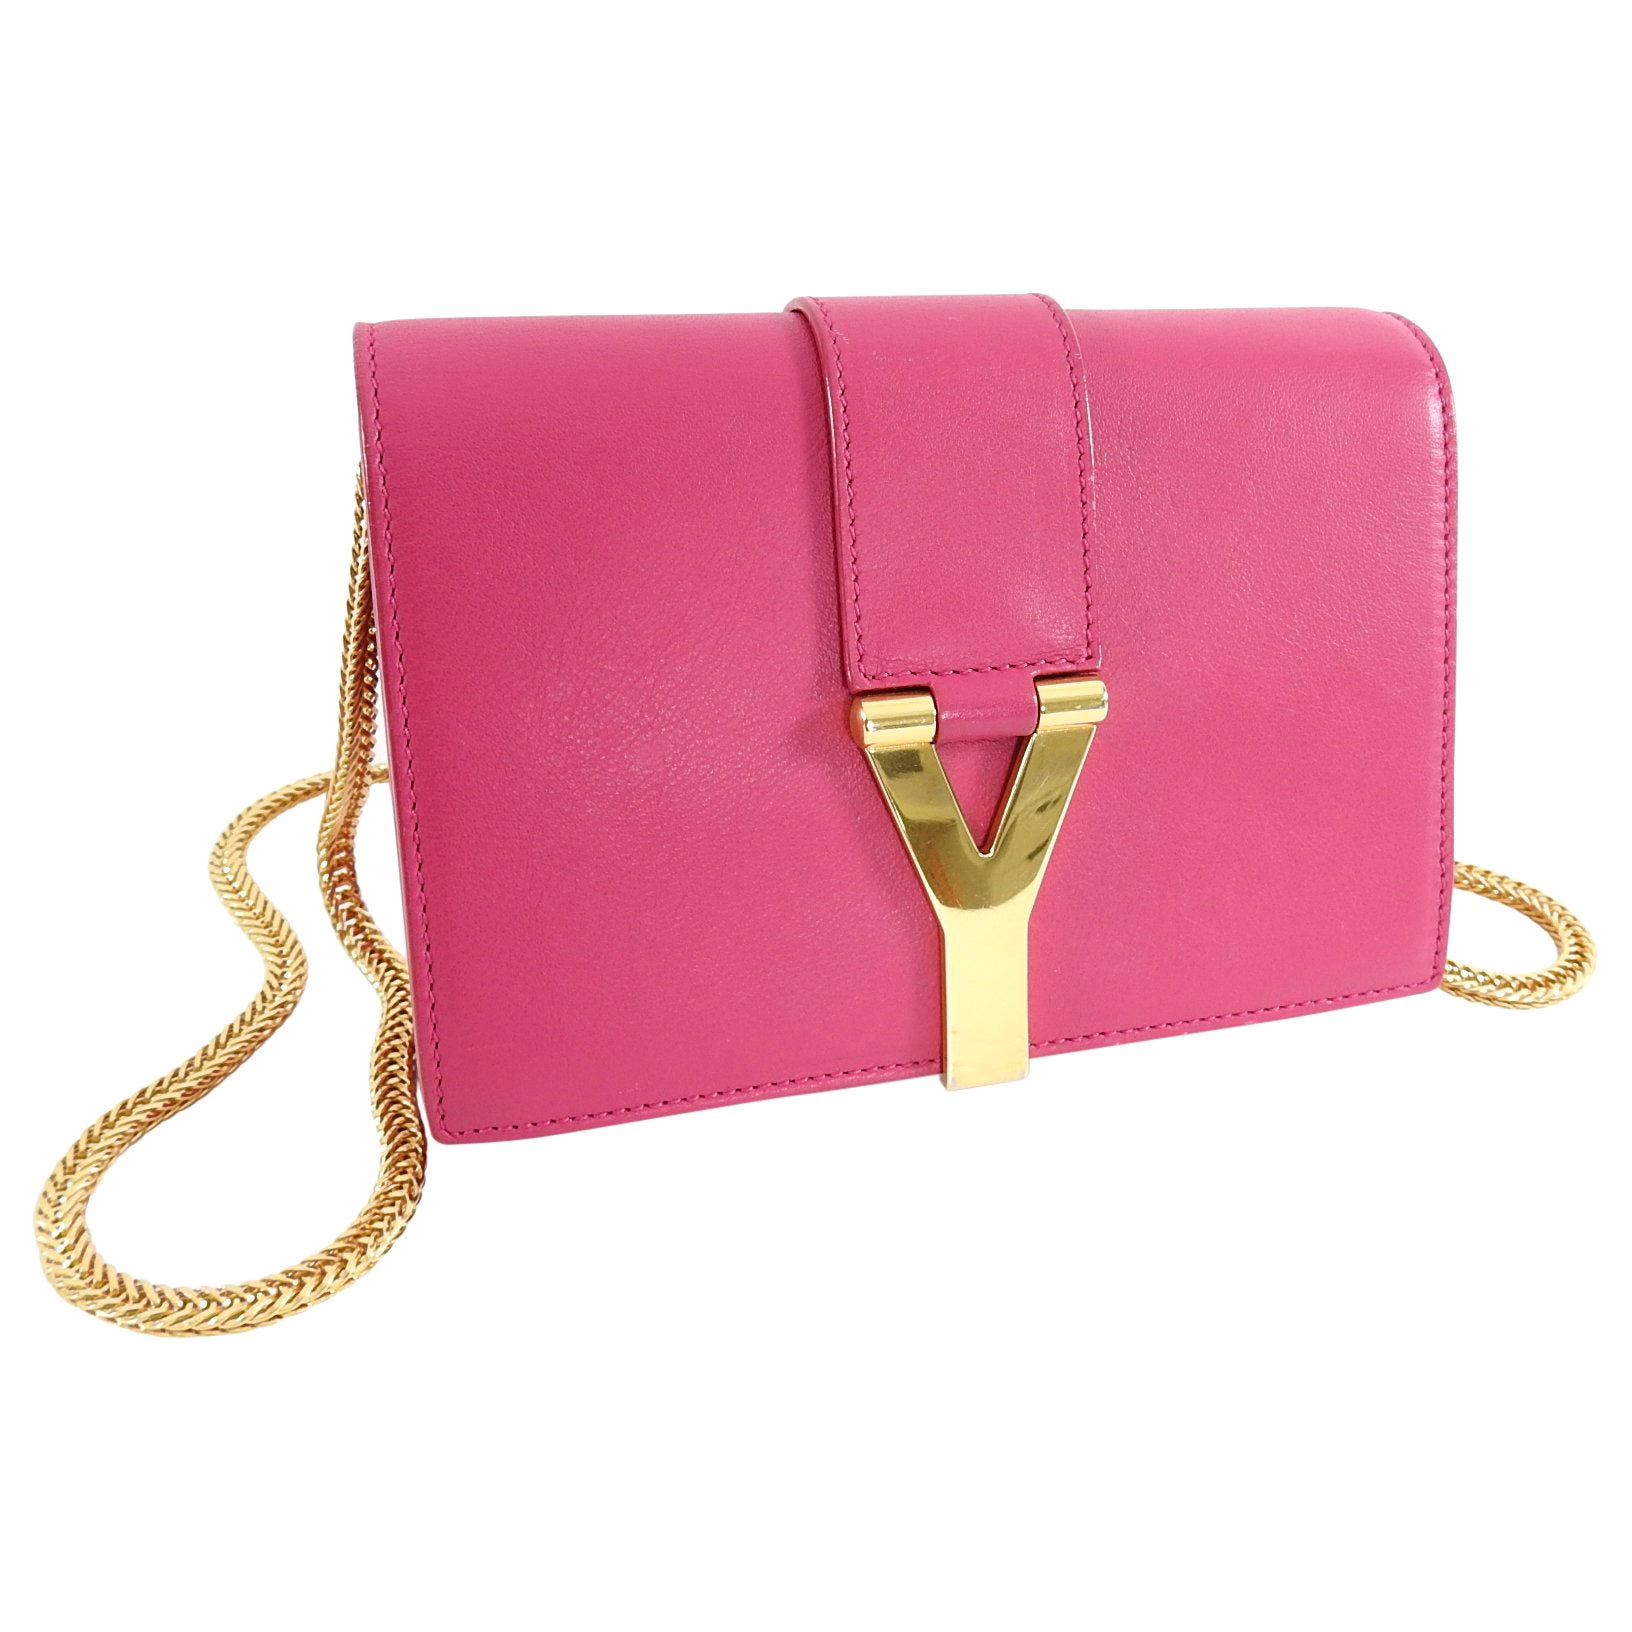 691895b8de2 YSL Saint Laurent Pink Mini Sac Y Ligne Crossbody Bag at 1stdibs